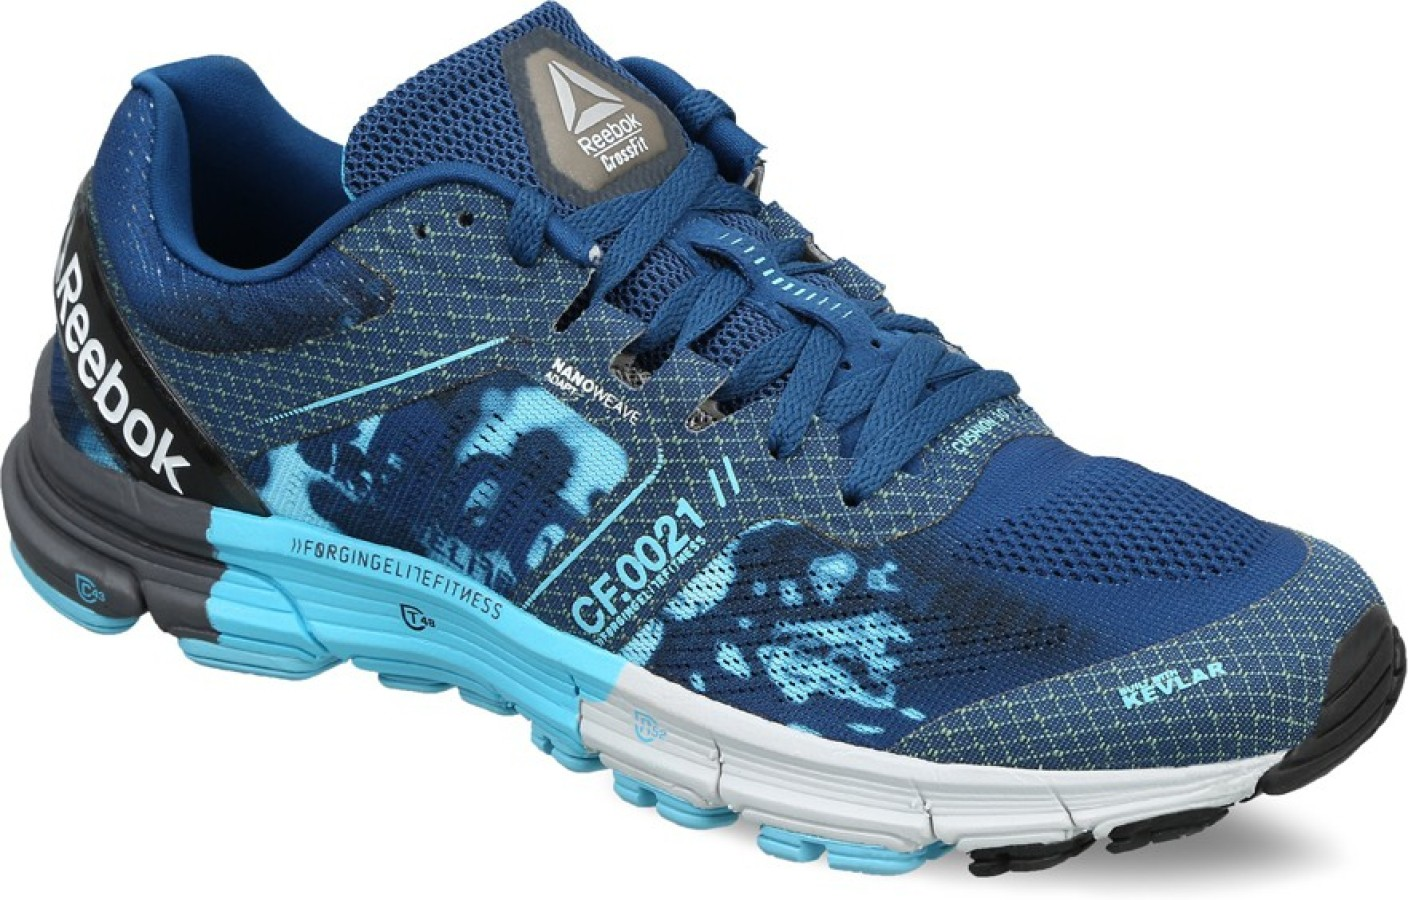 Running Shoe Good For Crossfit